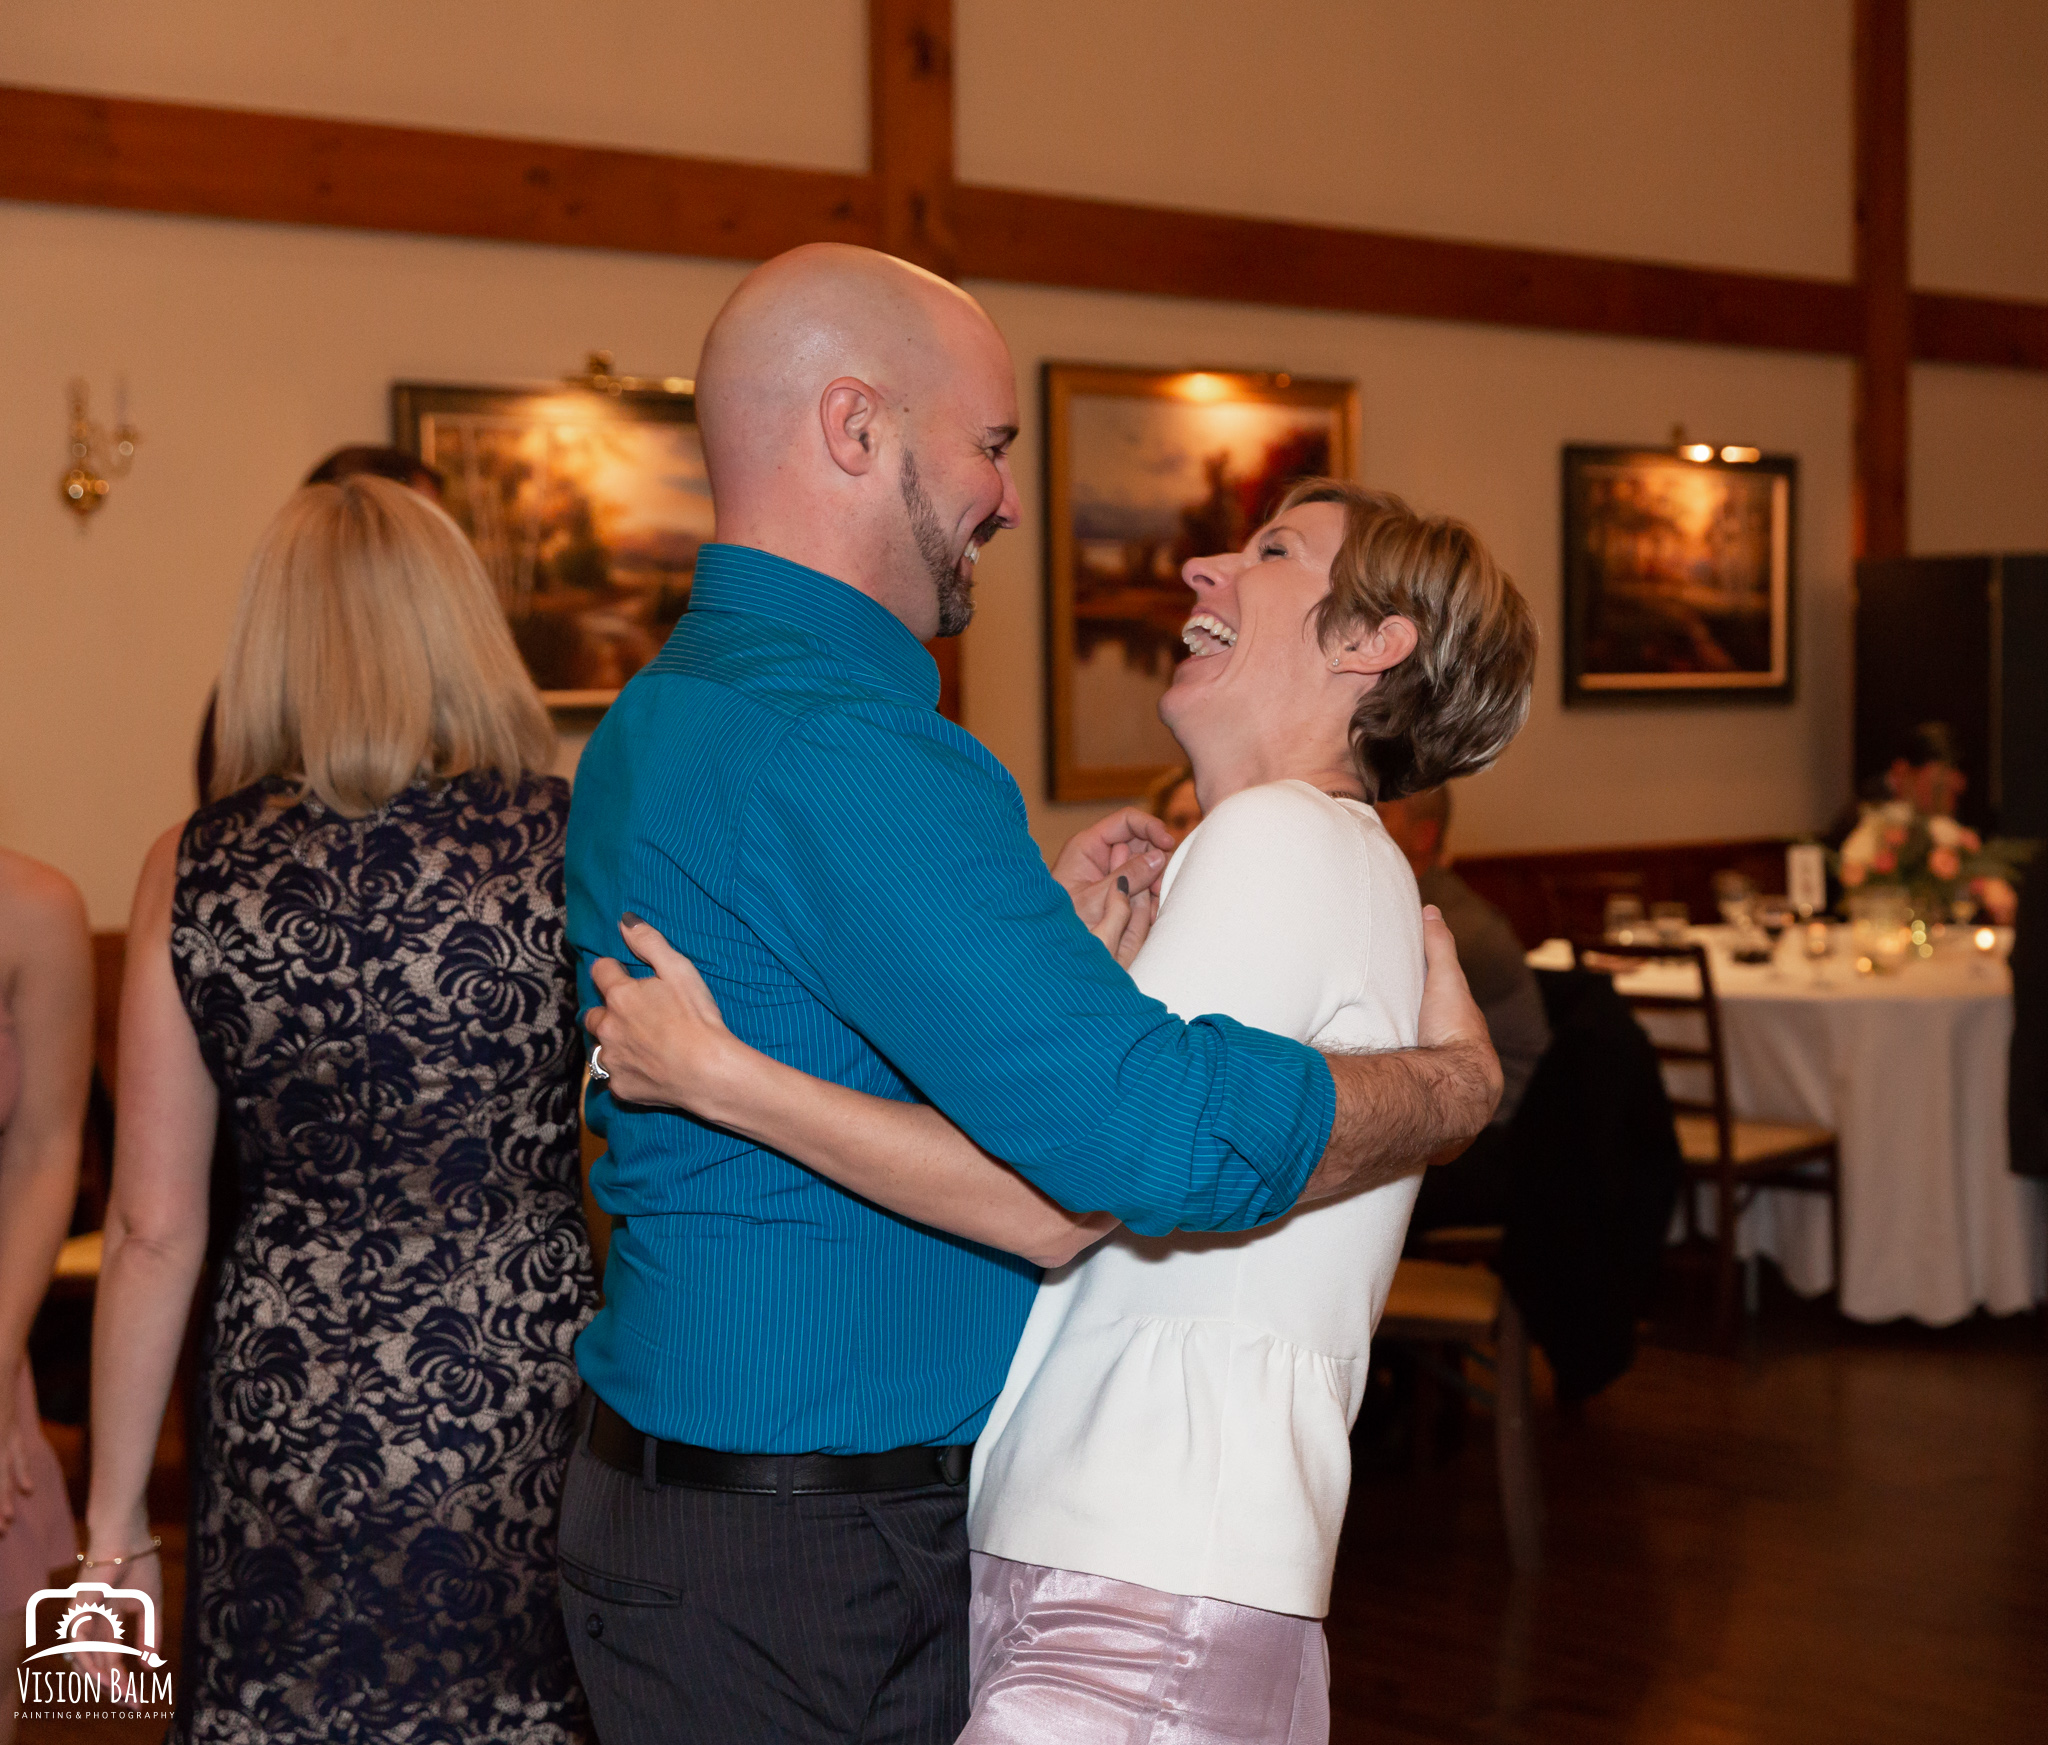 Wedding photo of wedding guests in the venue of Zuka's Hilltop Barn by Vision Balm in Charleston, SC.